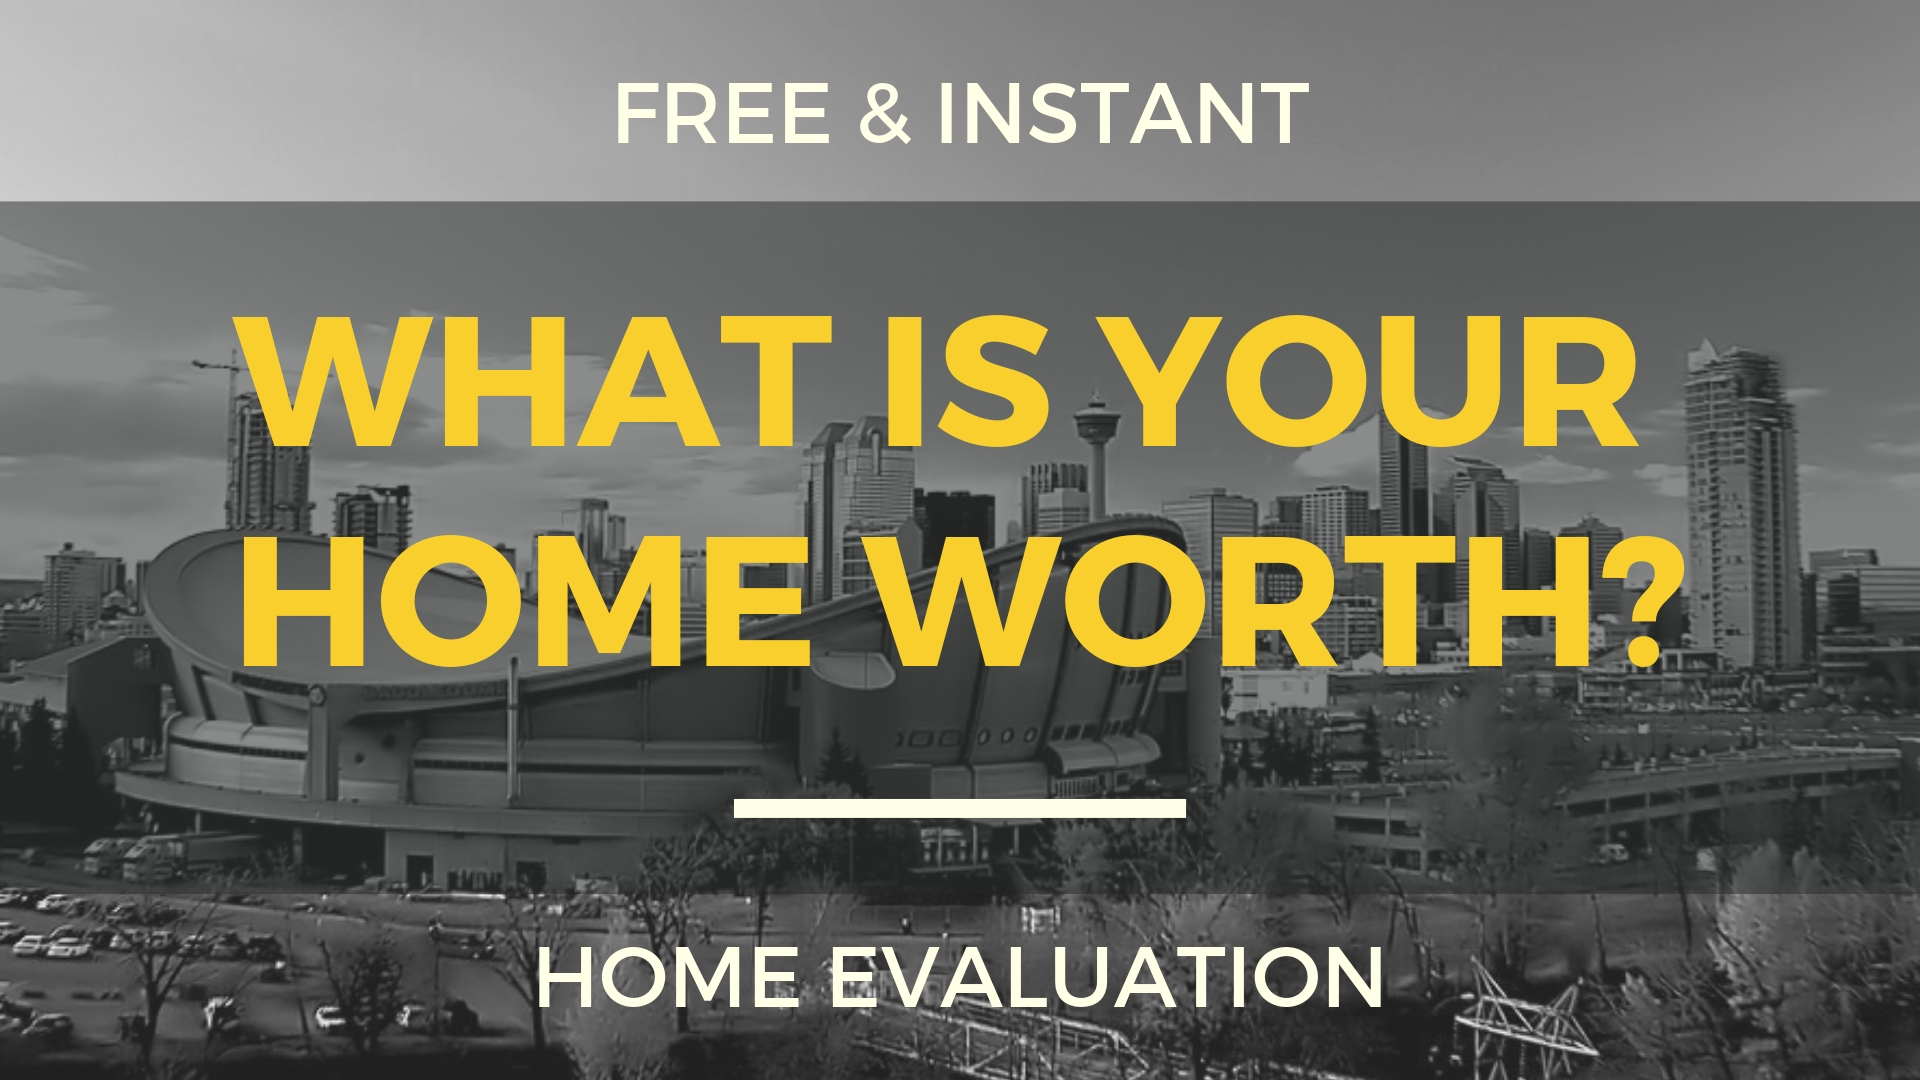 Free and Instant Home Evaluation